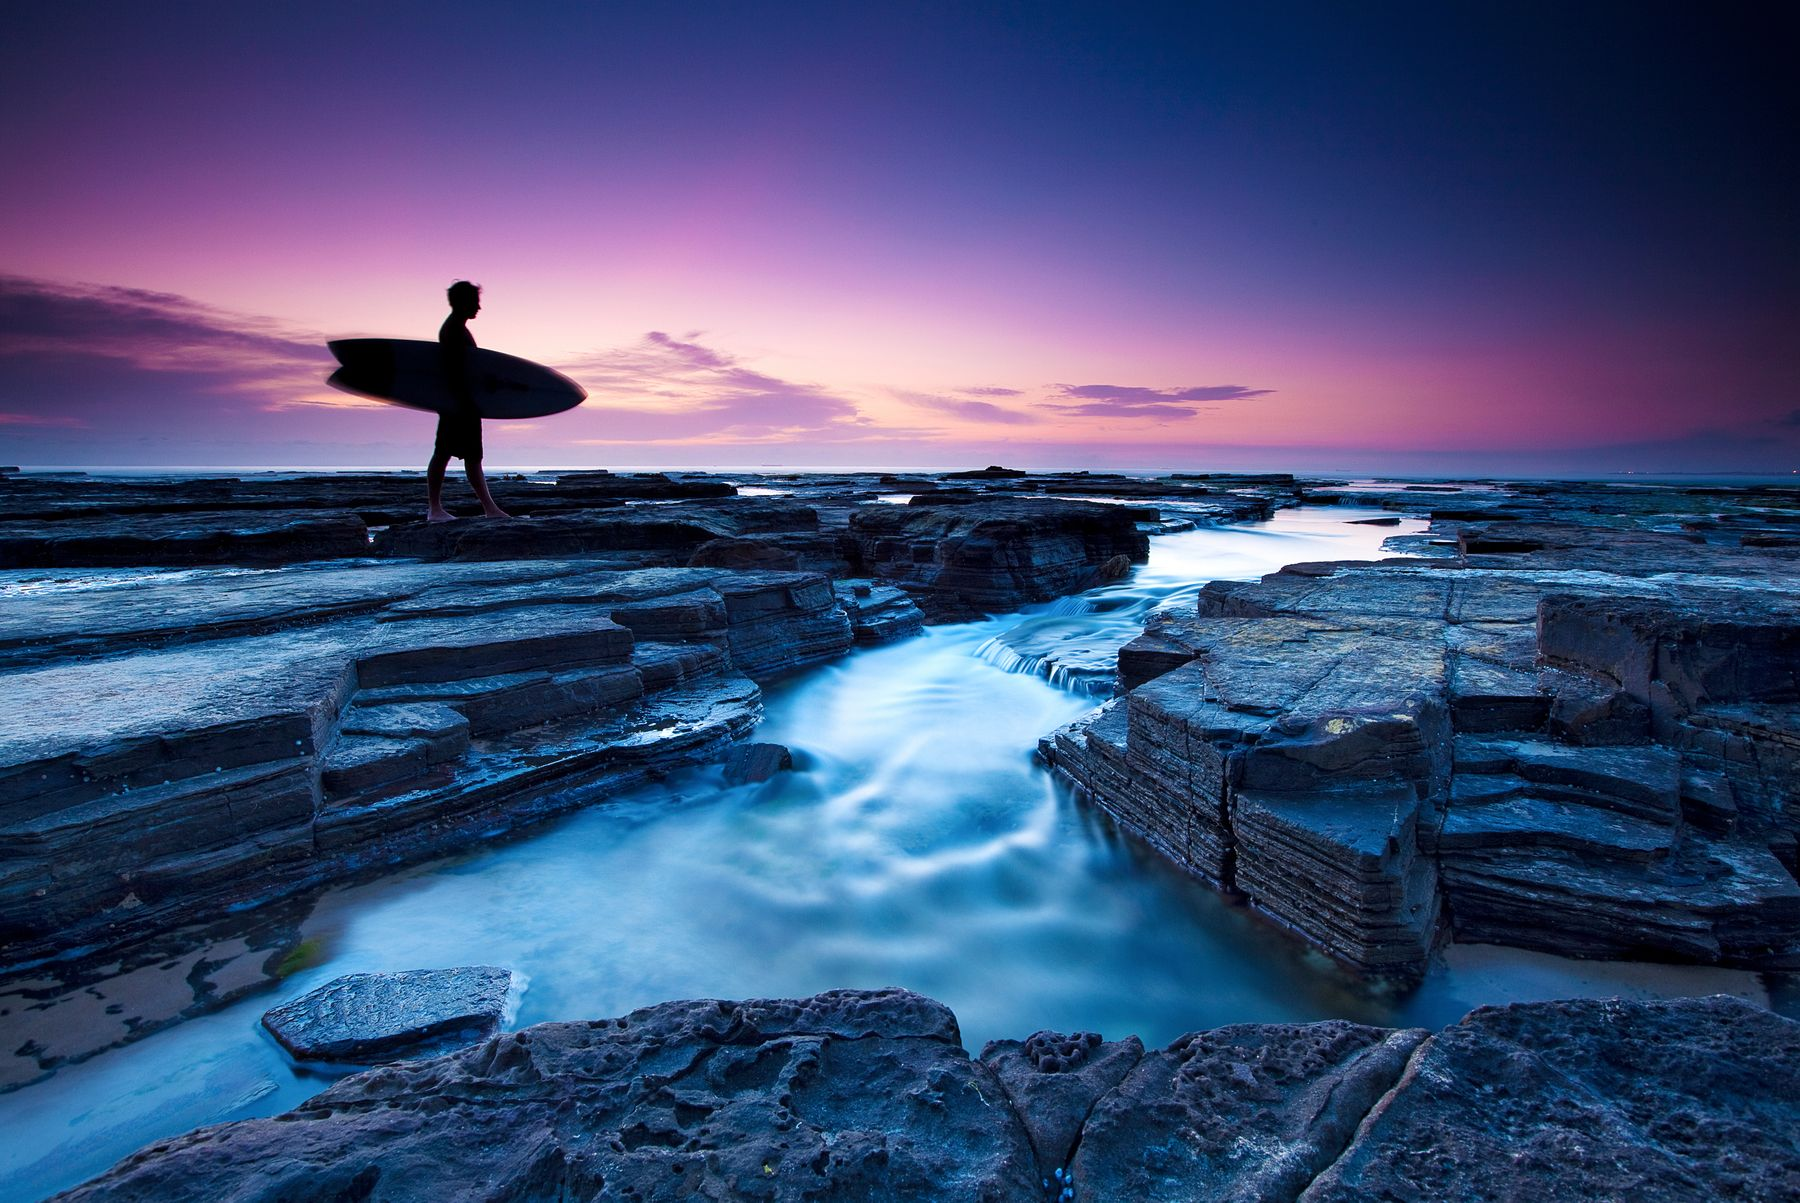 Silhouette of a surfer at dusk. Surfboards will incur extra Spirit baggage fees.